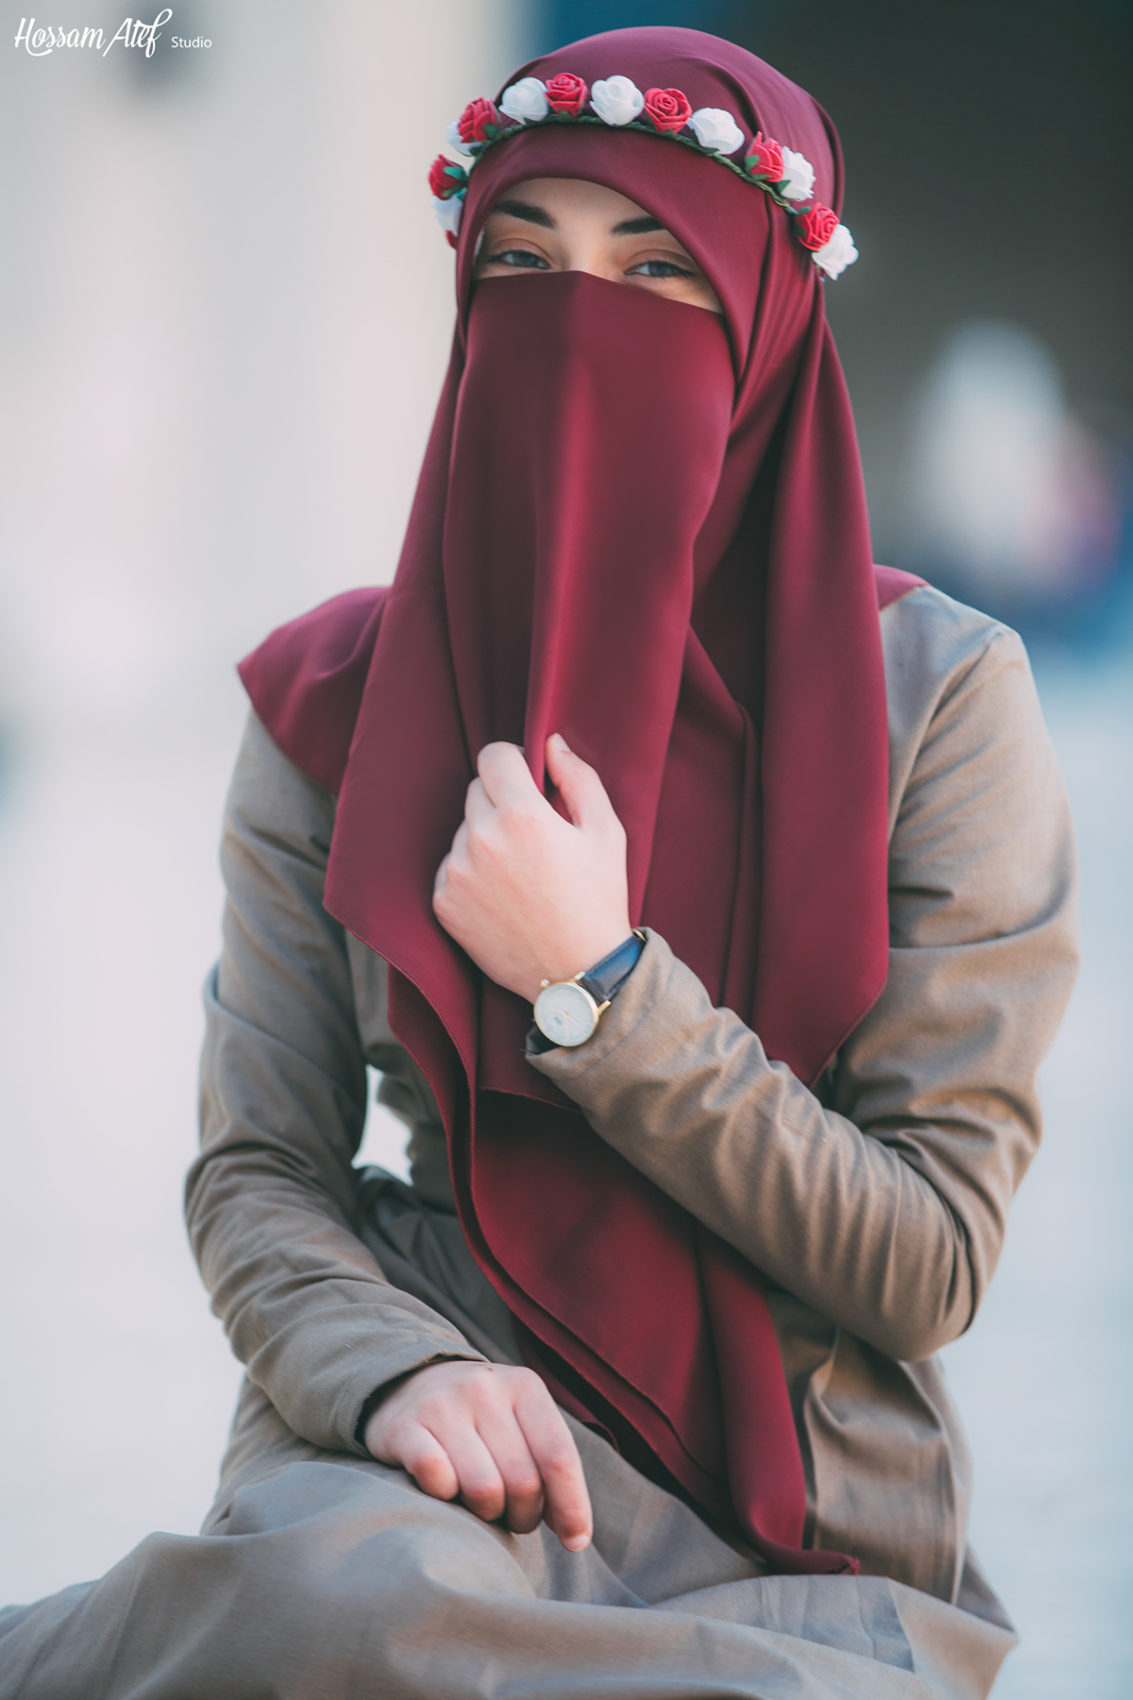 fulshear single muslim girls There is no singular look when it comes to muslim women's style  the 18-year-old founder of the hijab project takes strides every single day to challenge .